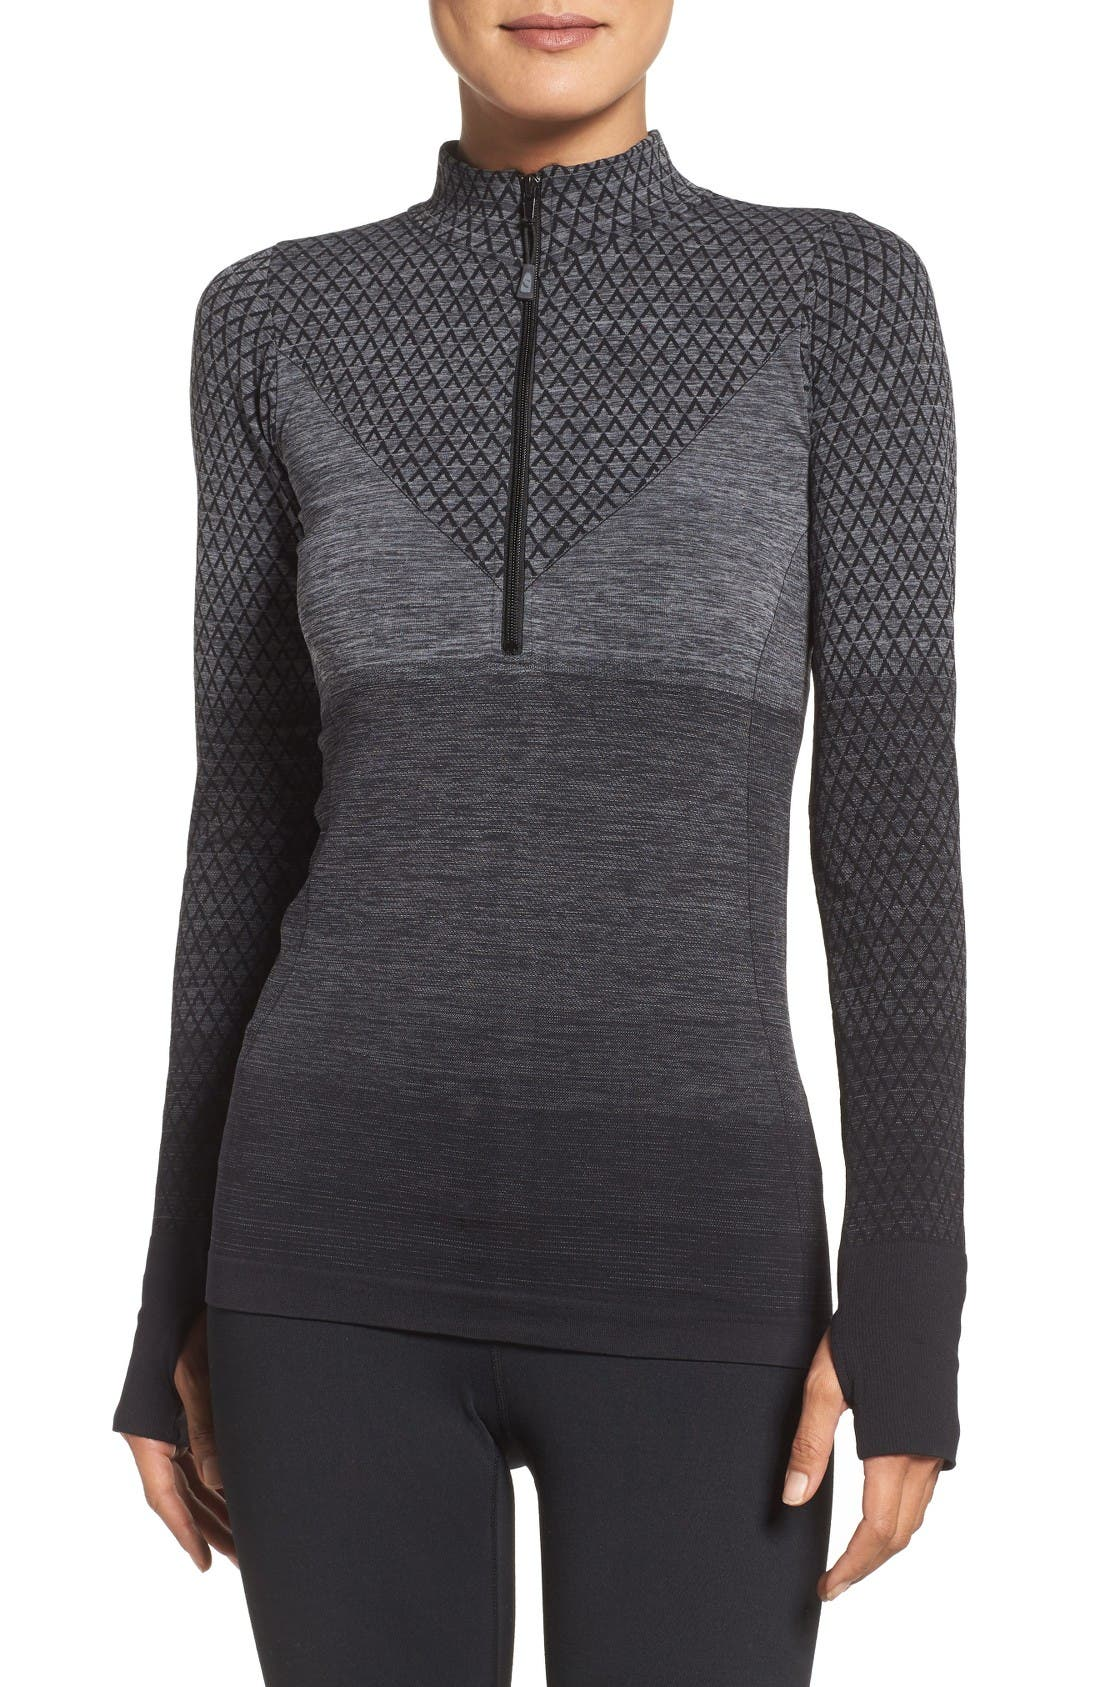 CLIMAWEAR Catch Me If You Can Running Pullover